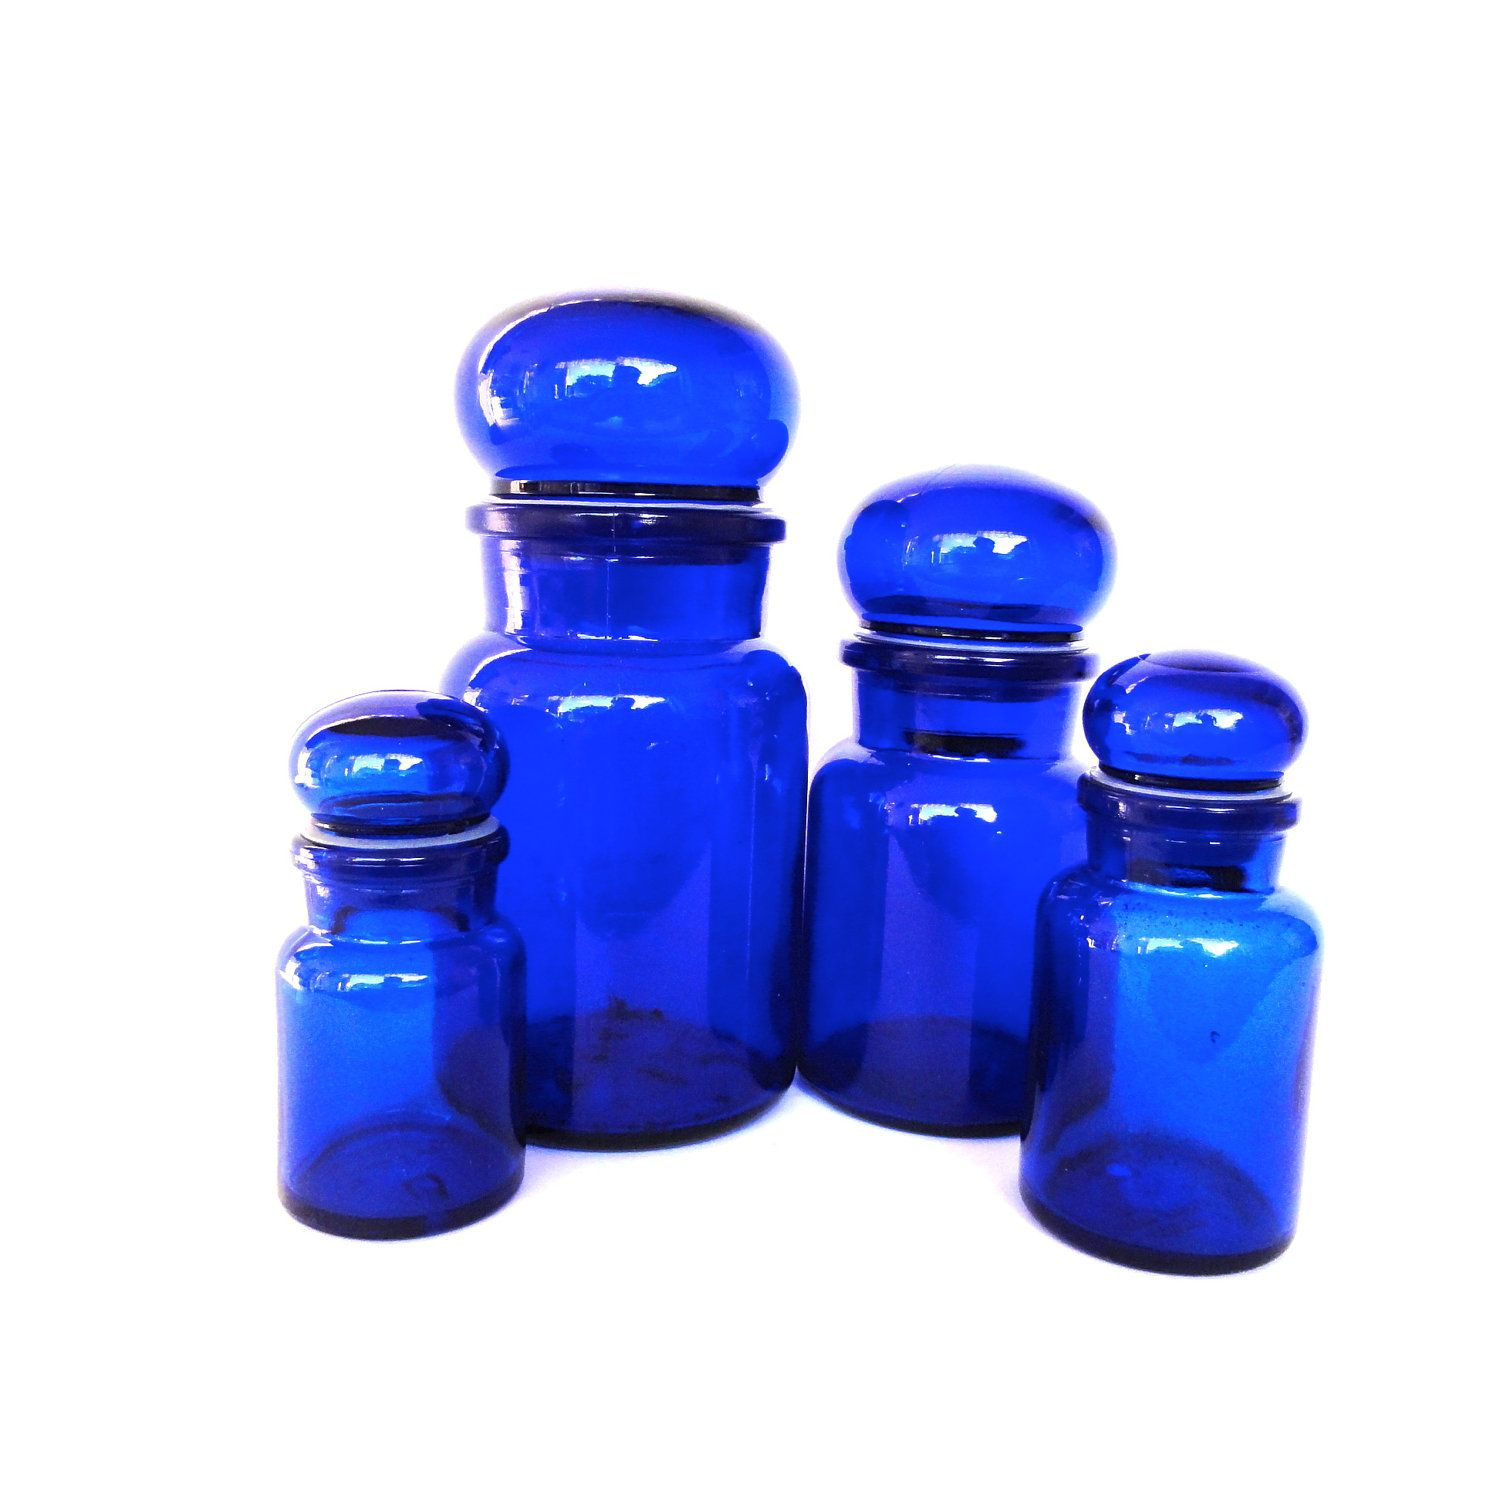 cobalt blue glass jars glass canisters storage vintage set of four cobalt blue glass jars glass canisters storage vintage set of four